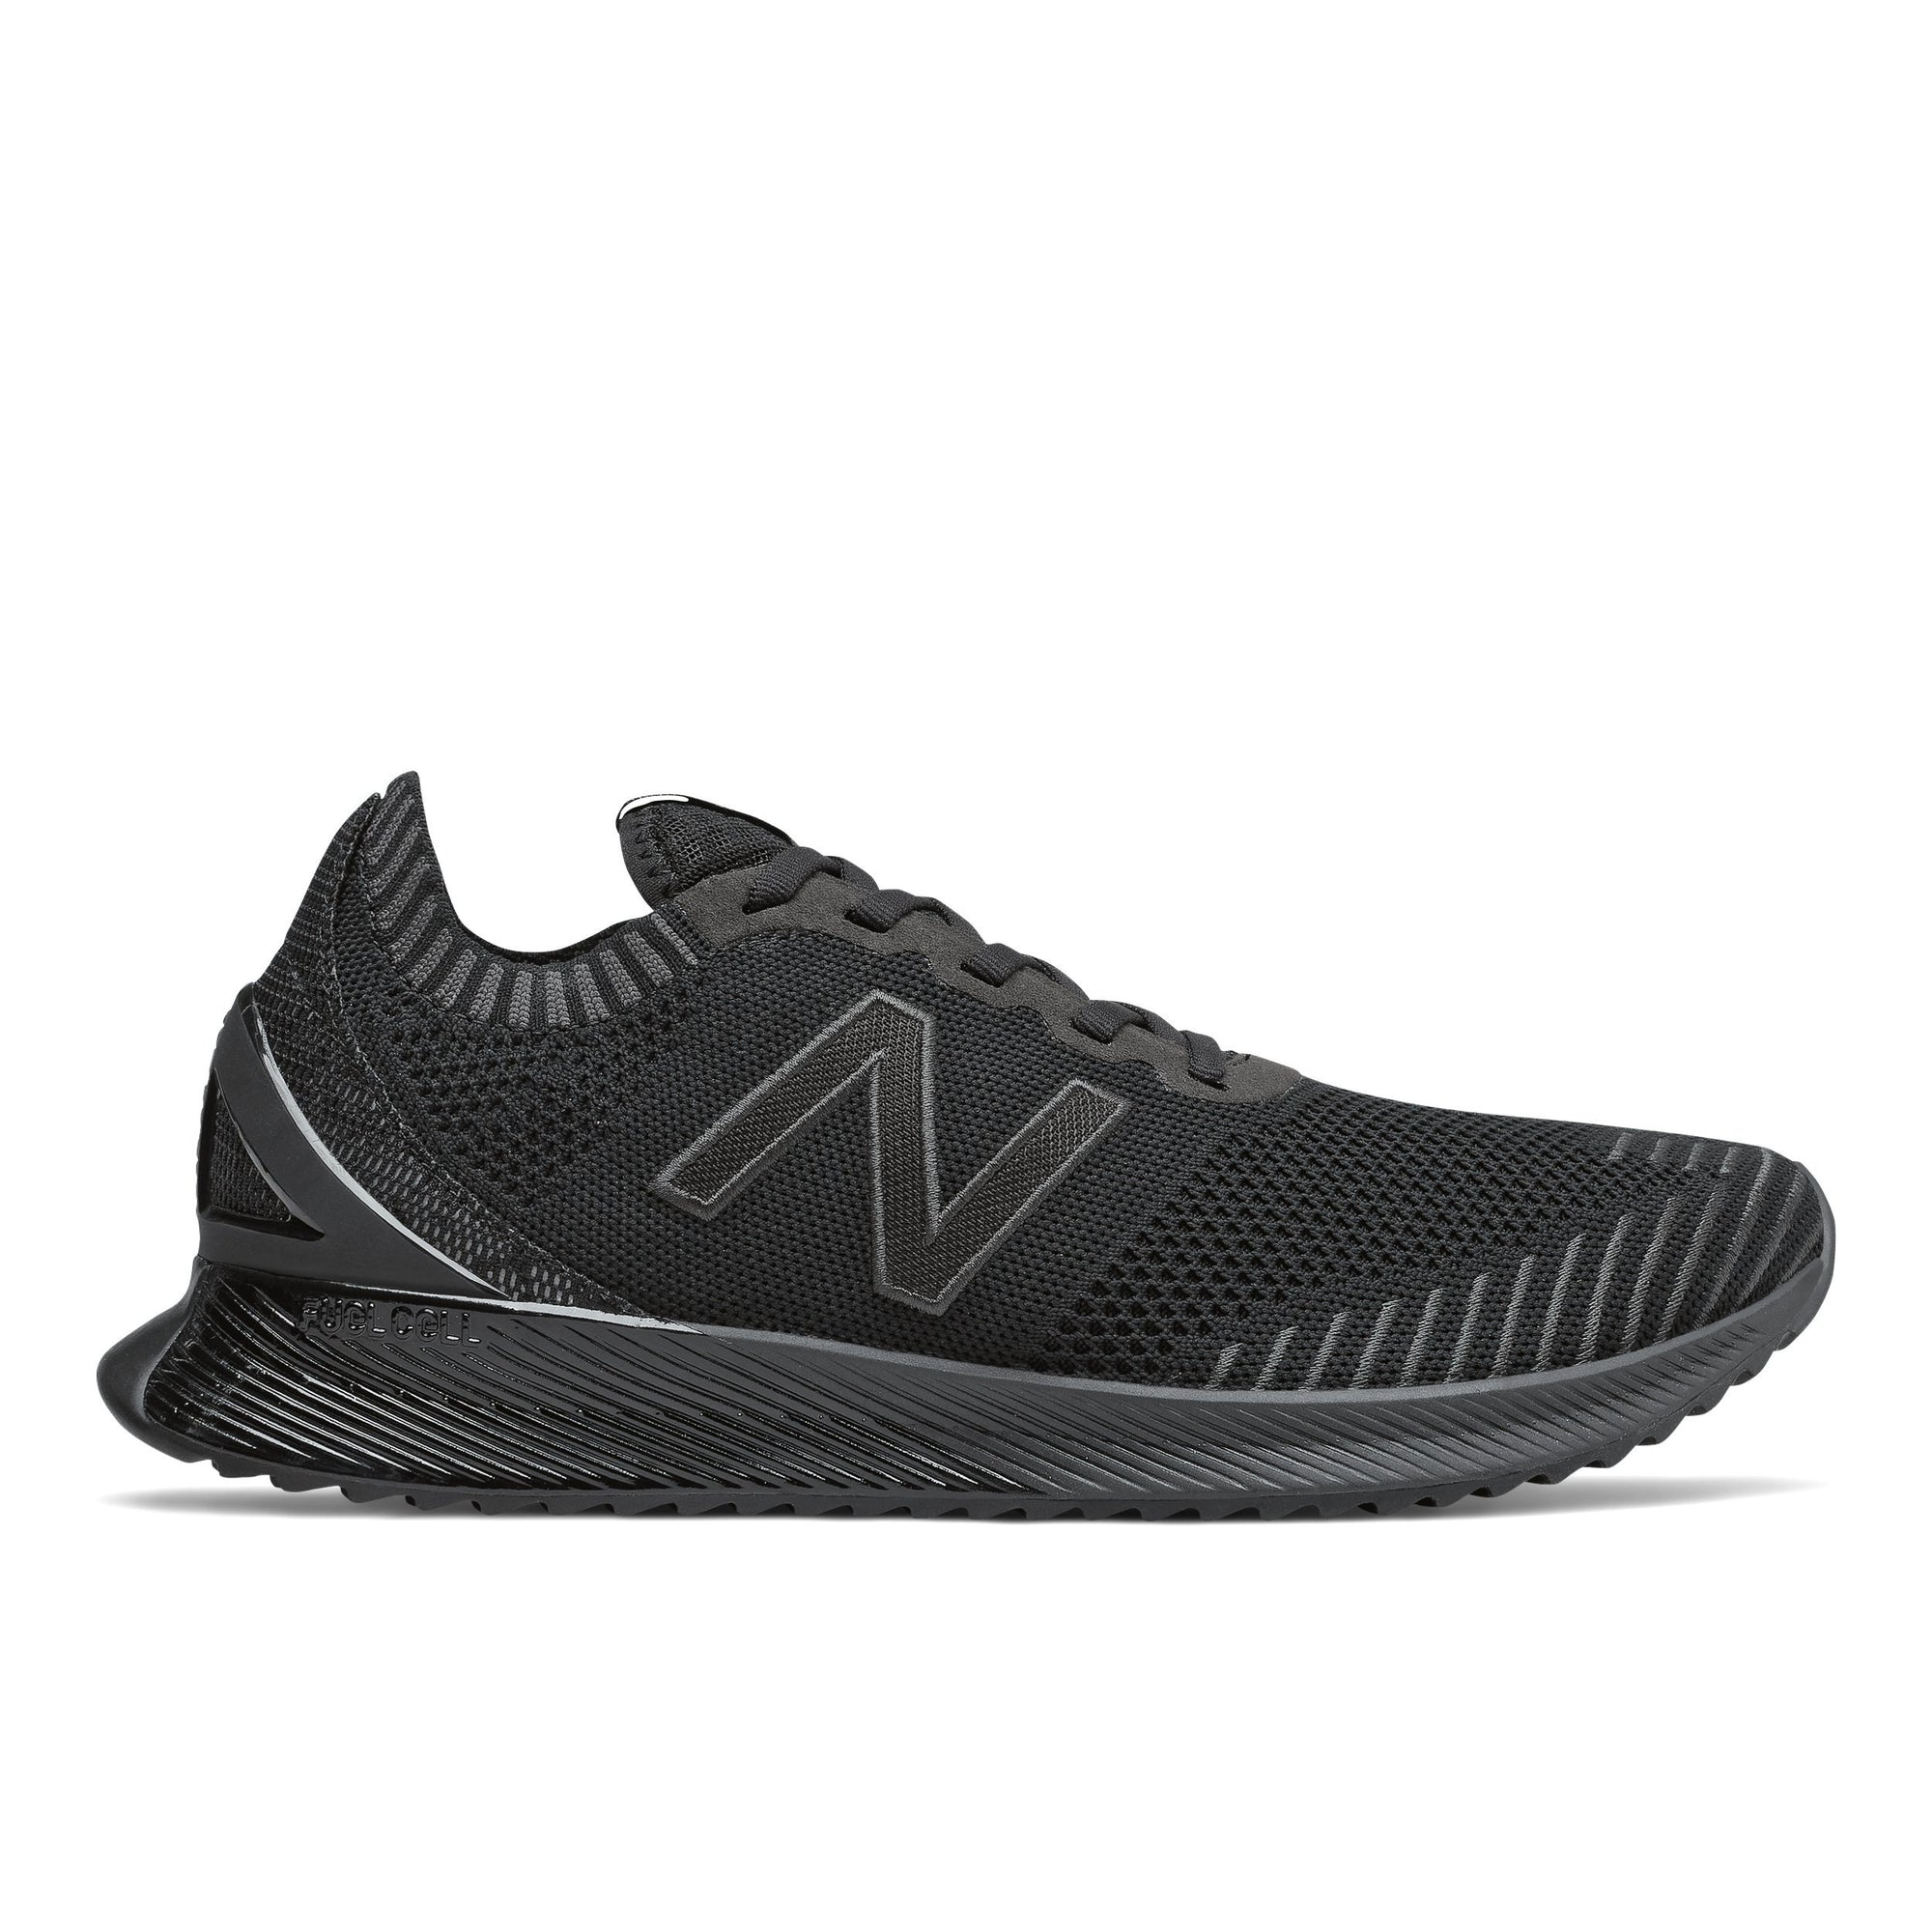 New Balance Mens FuelCell Echo - Triple Black SP-Footwear-Mens New Balance